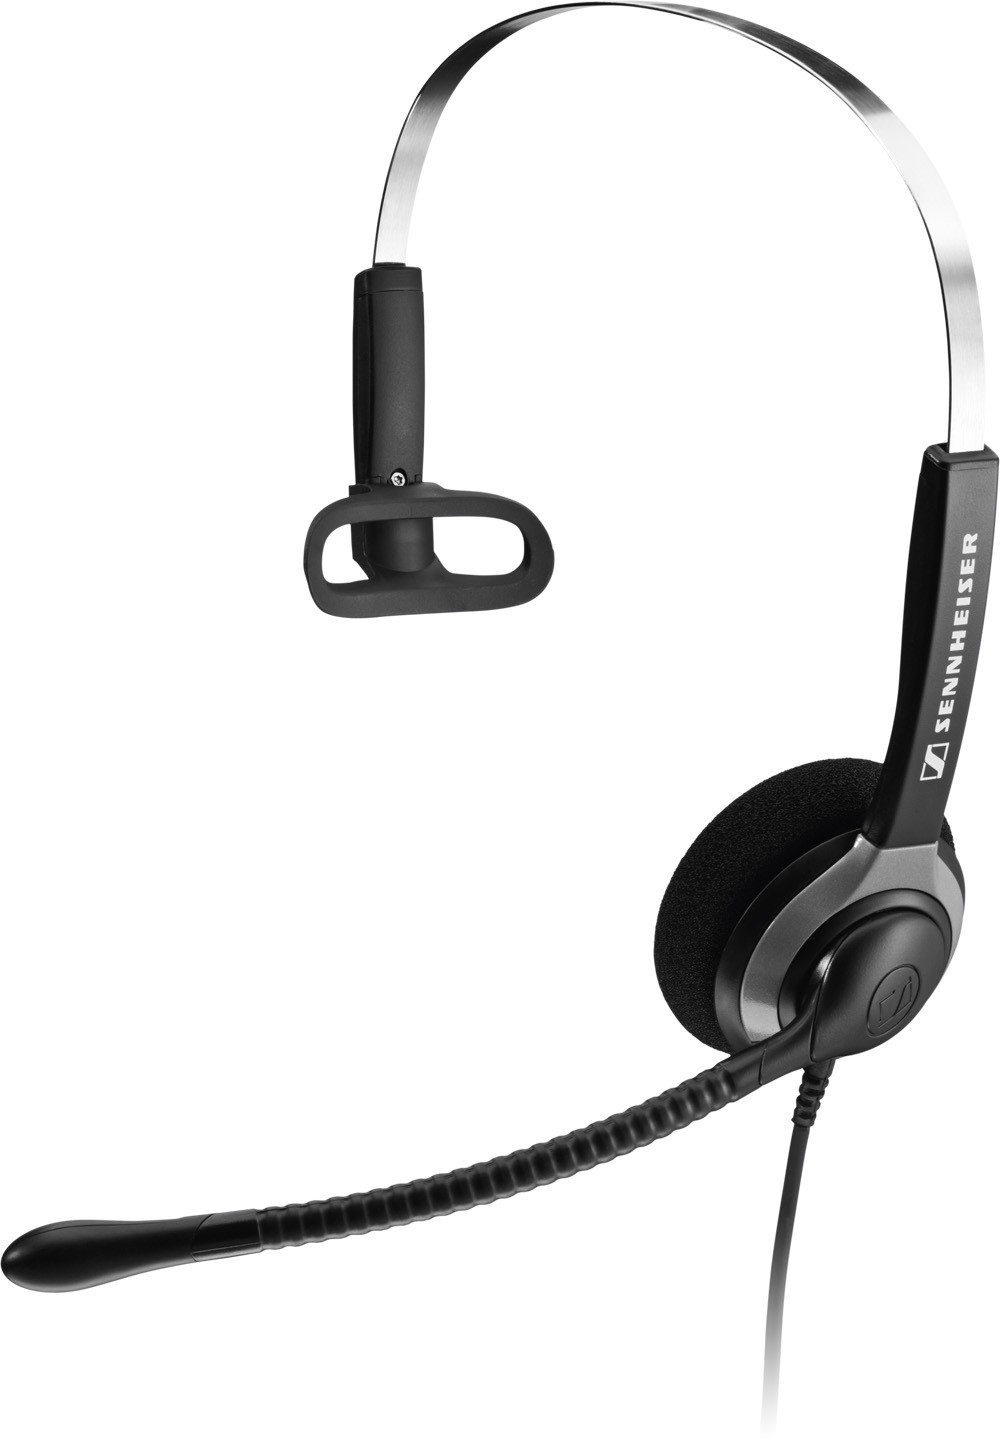 Sennheiser SH 230 Monaural Office Headset